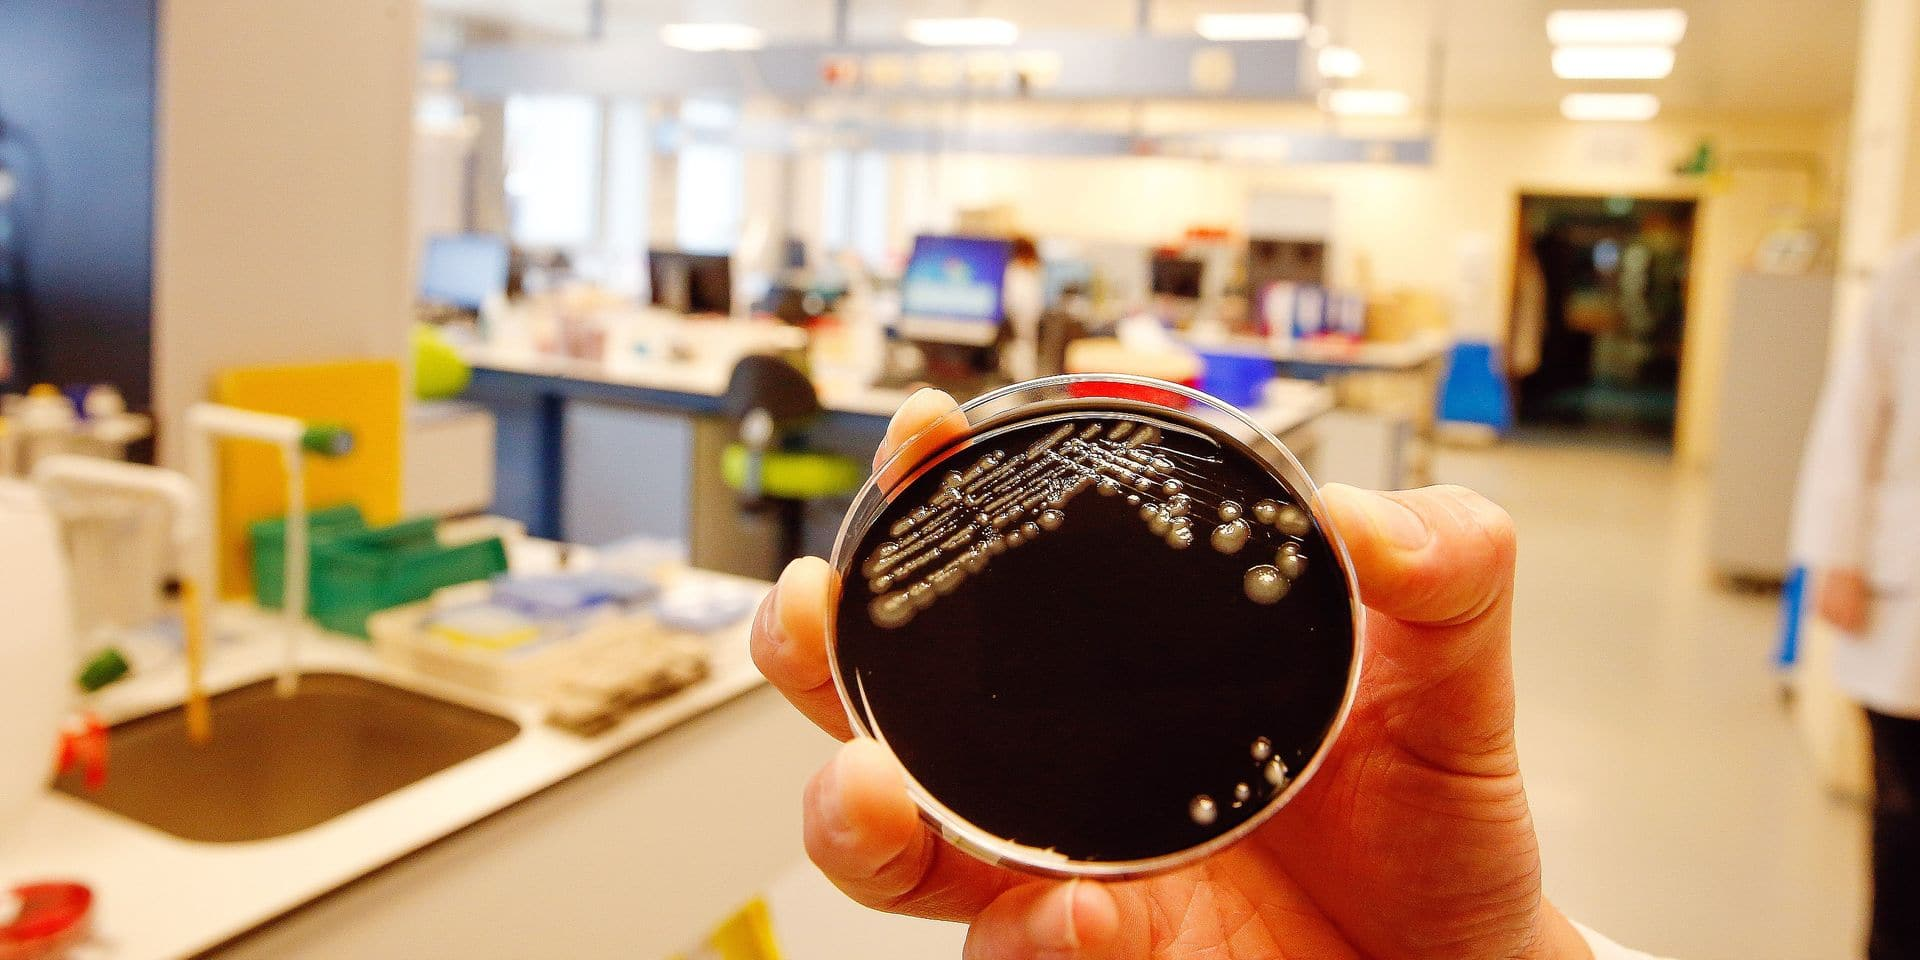 Illustration picture shows a culture of the Legionella pneumophila bacteria at the UZ Gent hospital, Friday 17 May 2019. Since May 3rd at least 18 people were admitted to the hospital with the legionella bacteria, two persons died. The exact source is still to be determined, but thought to be found in the Evergem canal zone. BELGA PHOTO NICOLAS MAETERLINCK